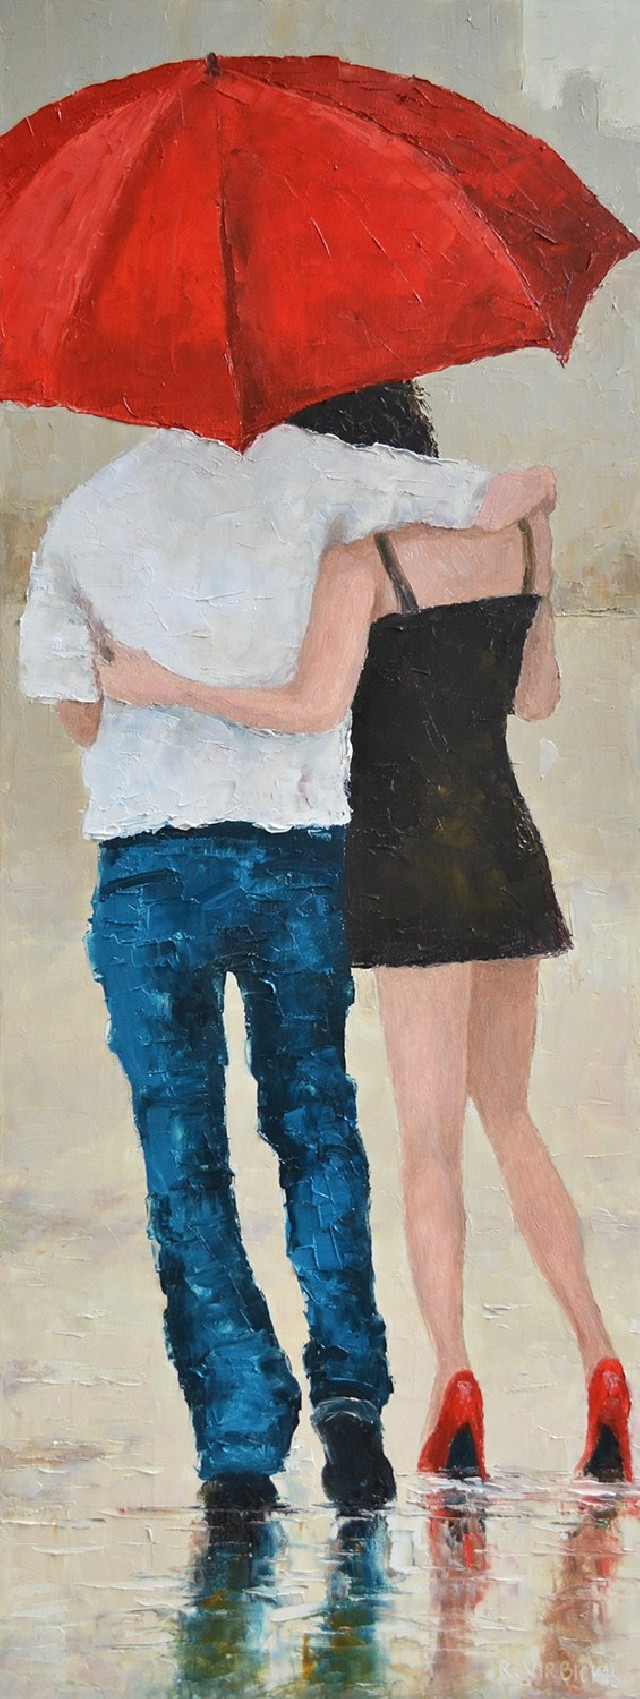 Couple original painting by Rimantas Virbickas. Paintings With People